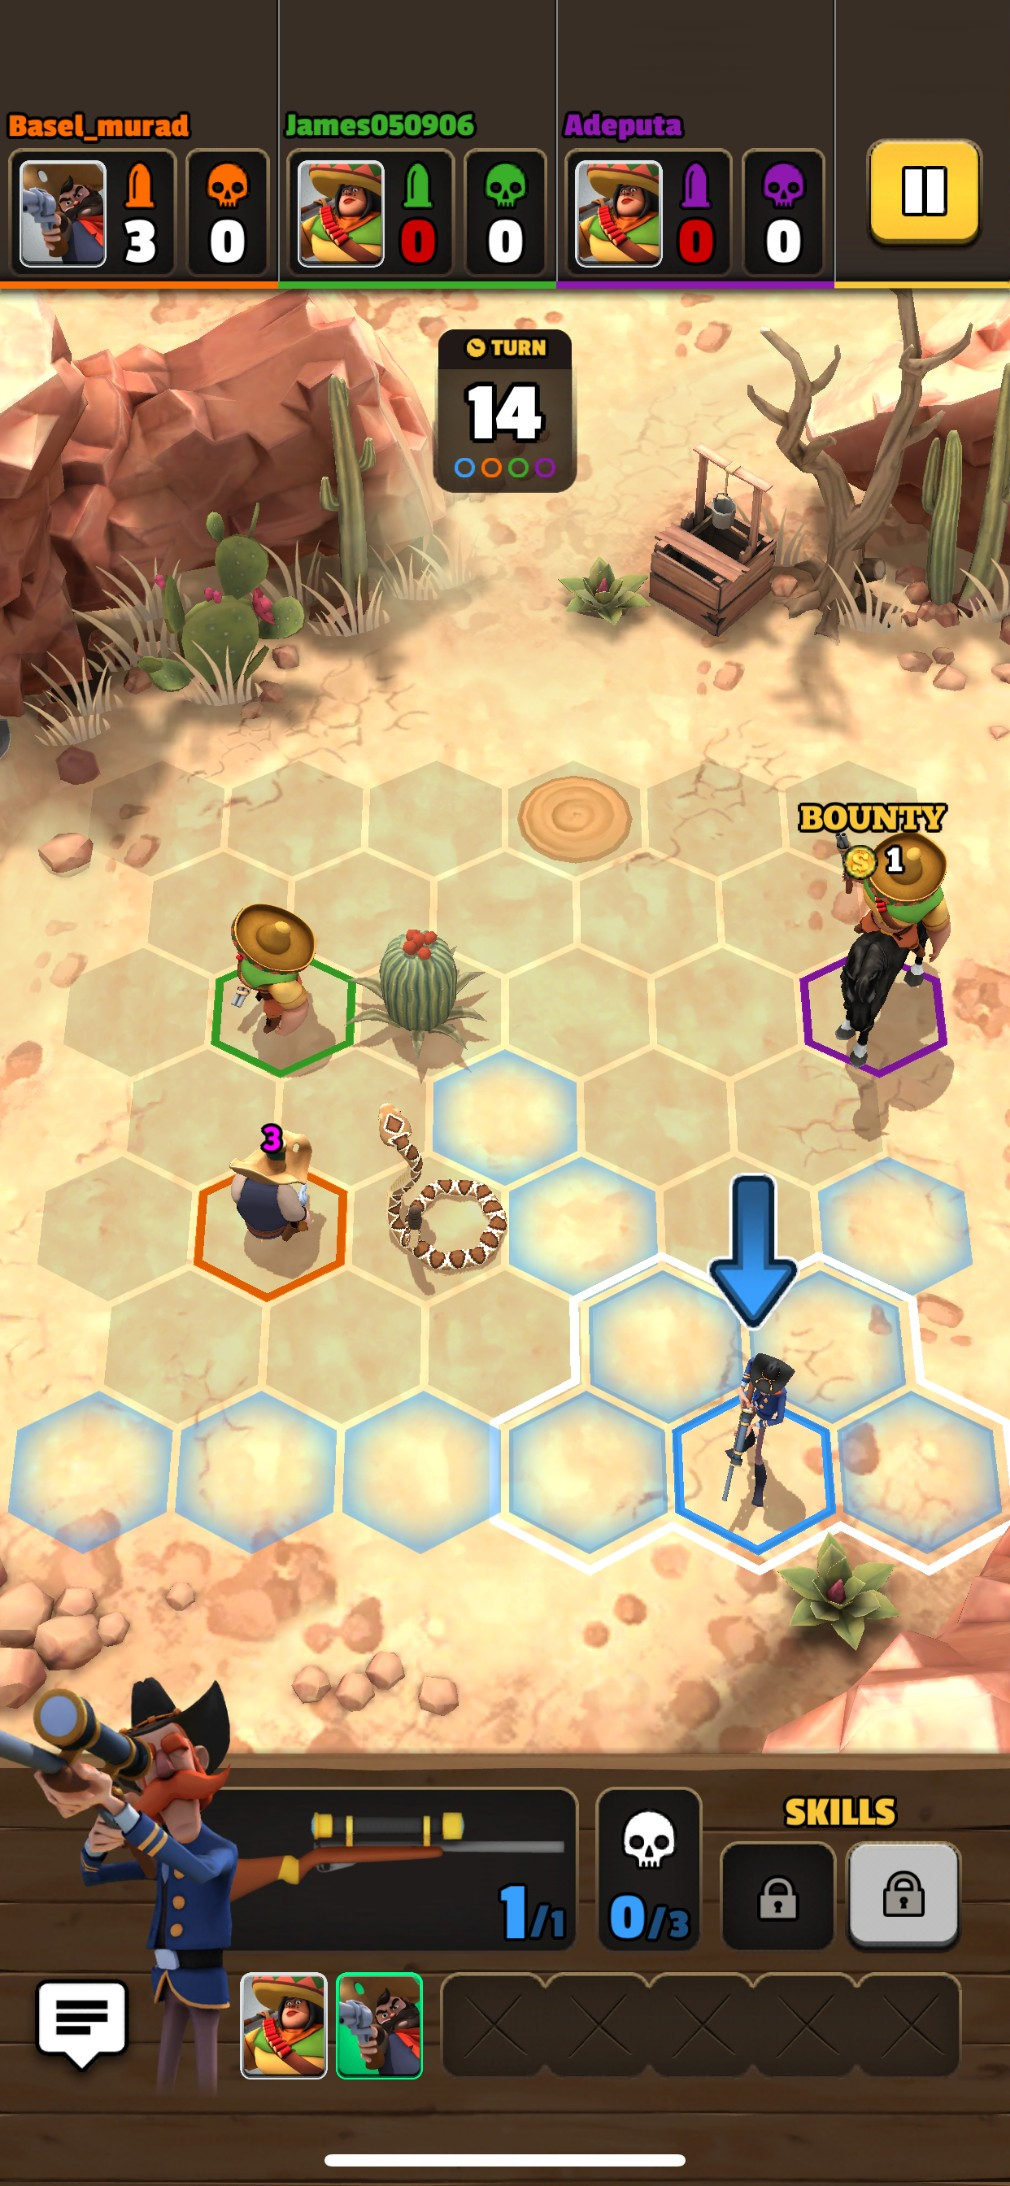 Pocket Cowboys iOS review screenshot - Playing as a sniper